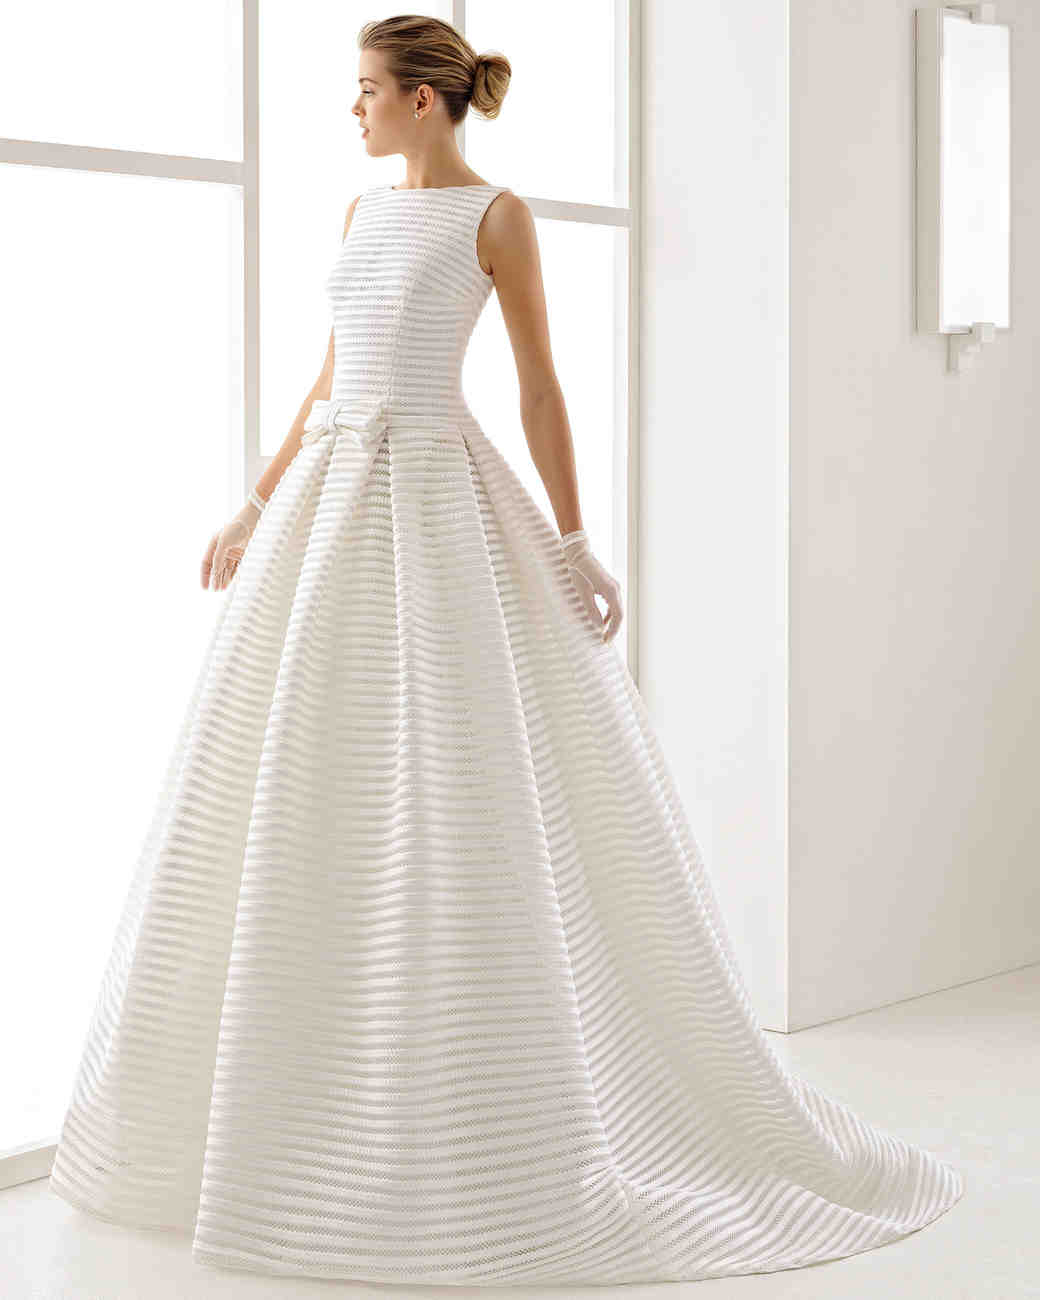 Preppy Sleeveless Striped Wedding Gown